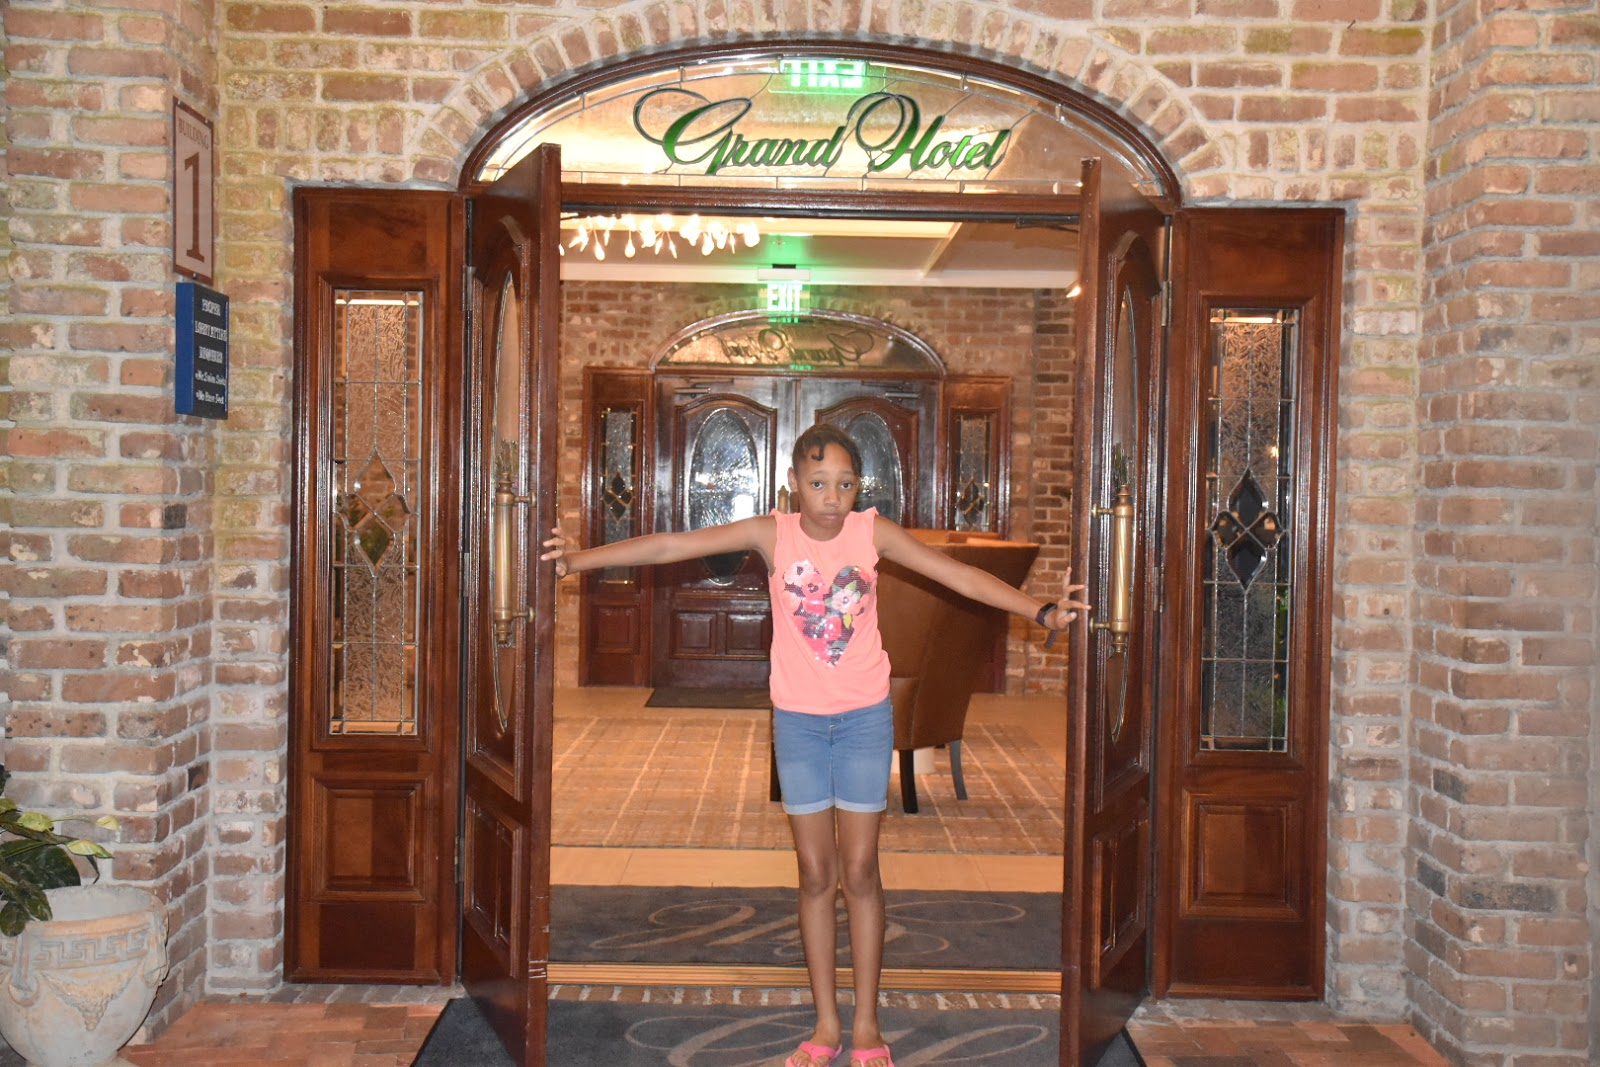 Our Getaway Trip to Grand Hotel Golf Resort and Spa  via  www.productreviewmom.com